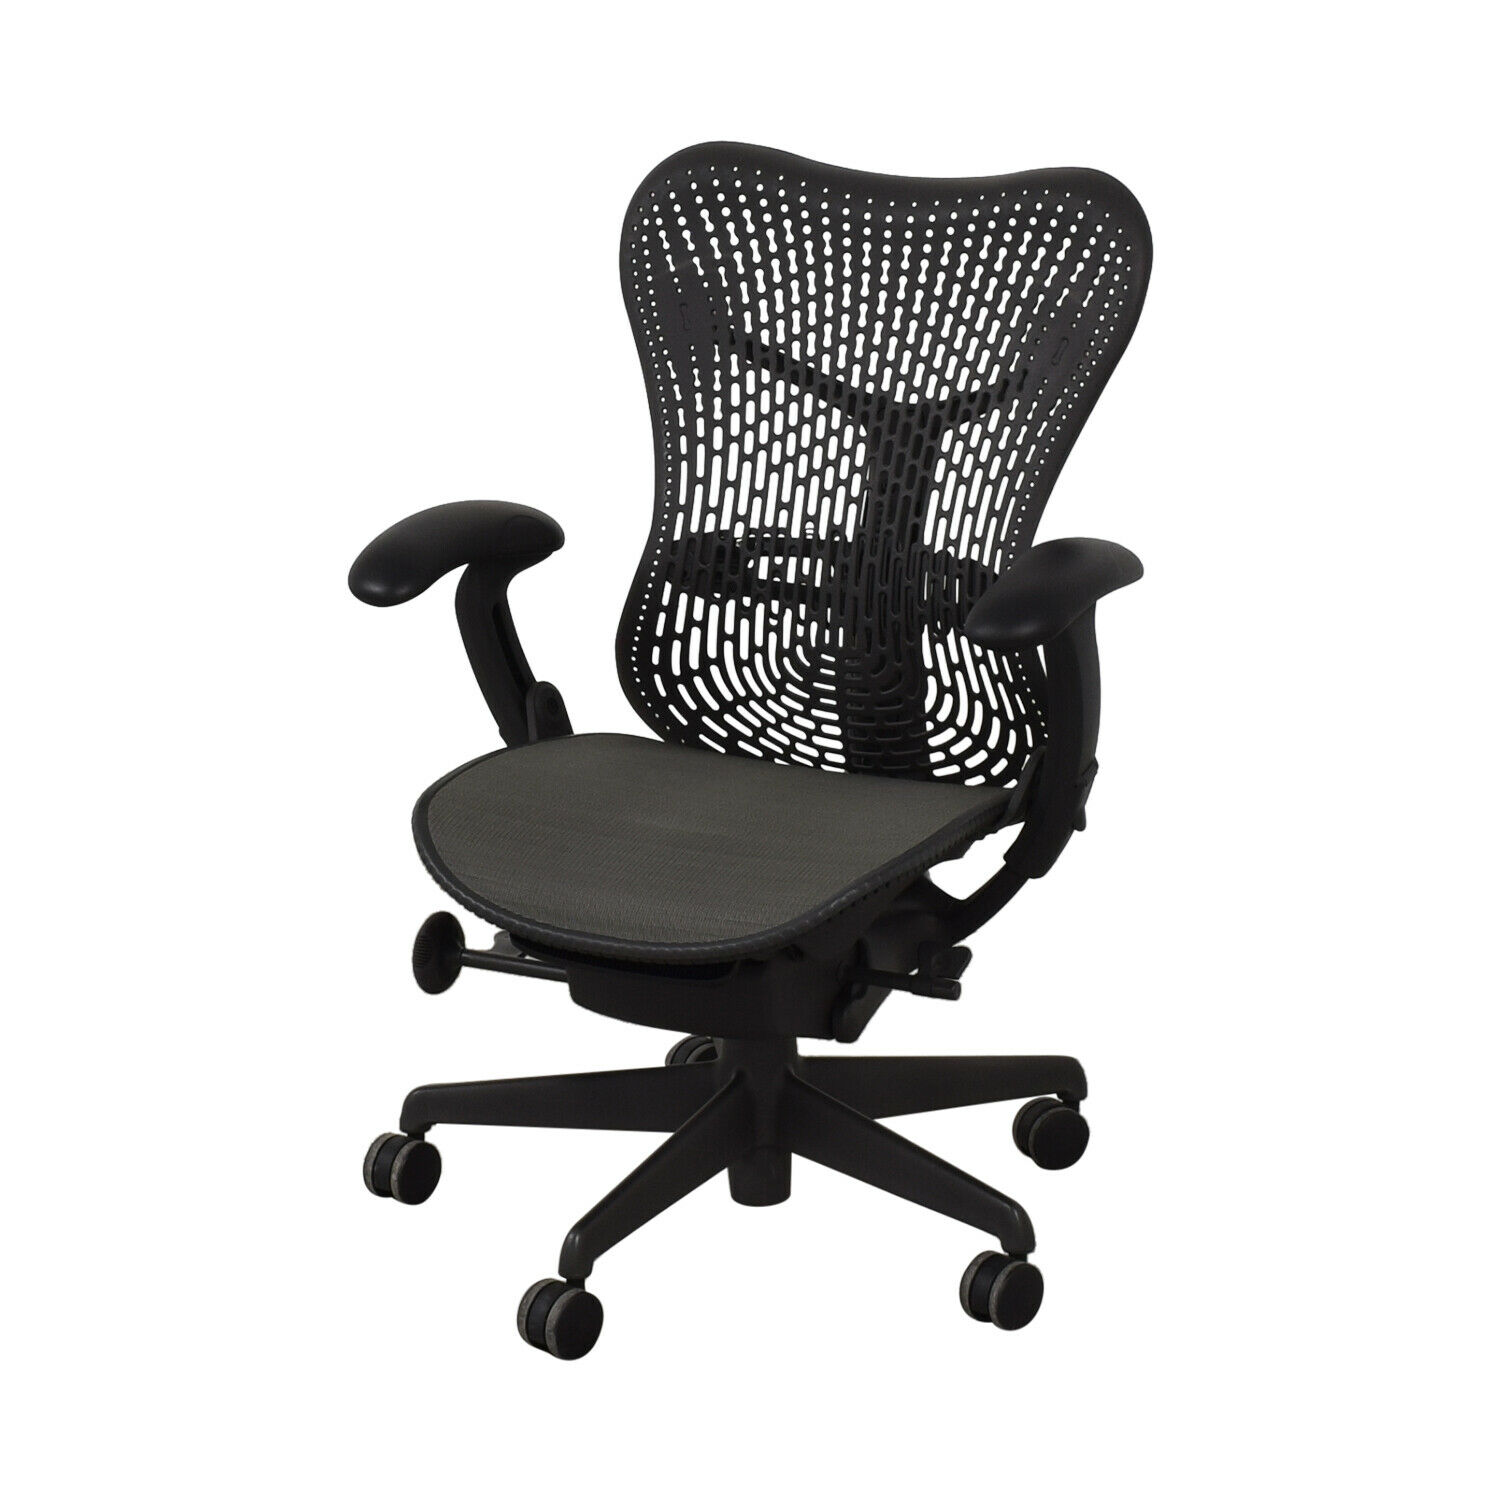 Image of: Canora Grey Broseley Task Chair For Sale Online Ebay